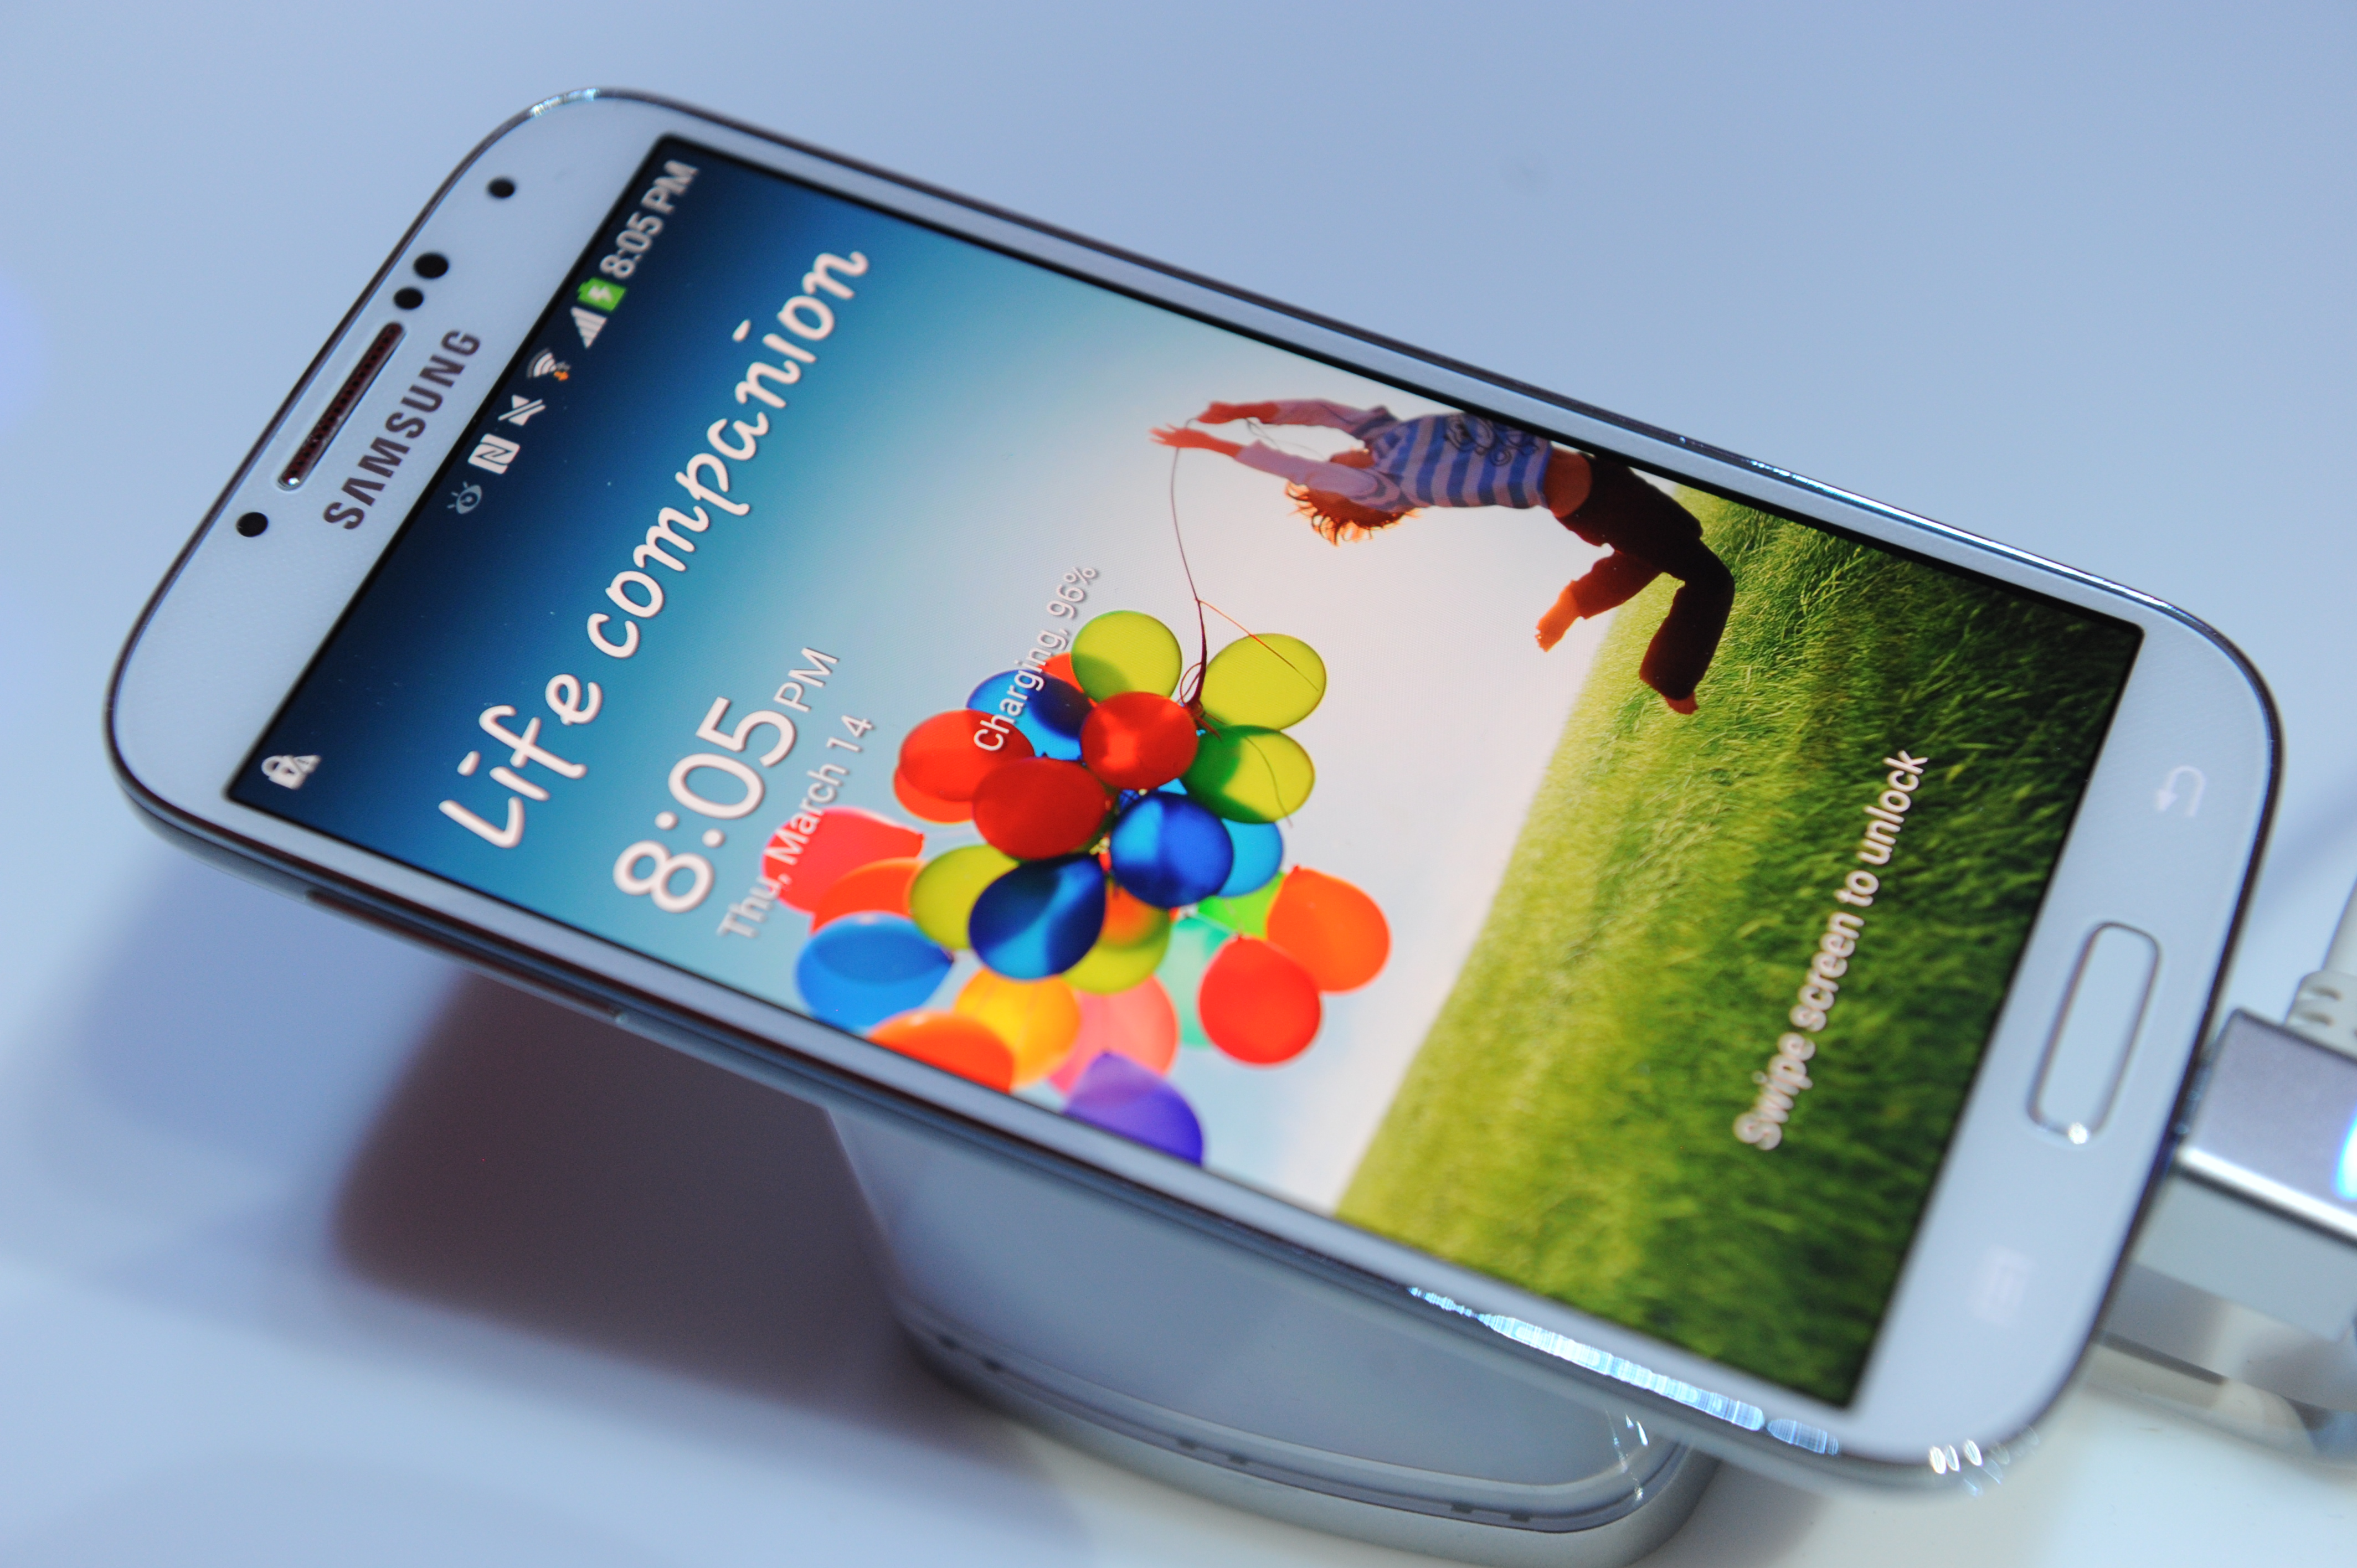 Galaxy s4 file recovery